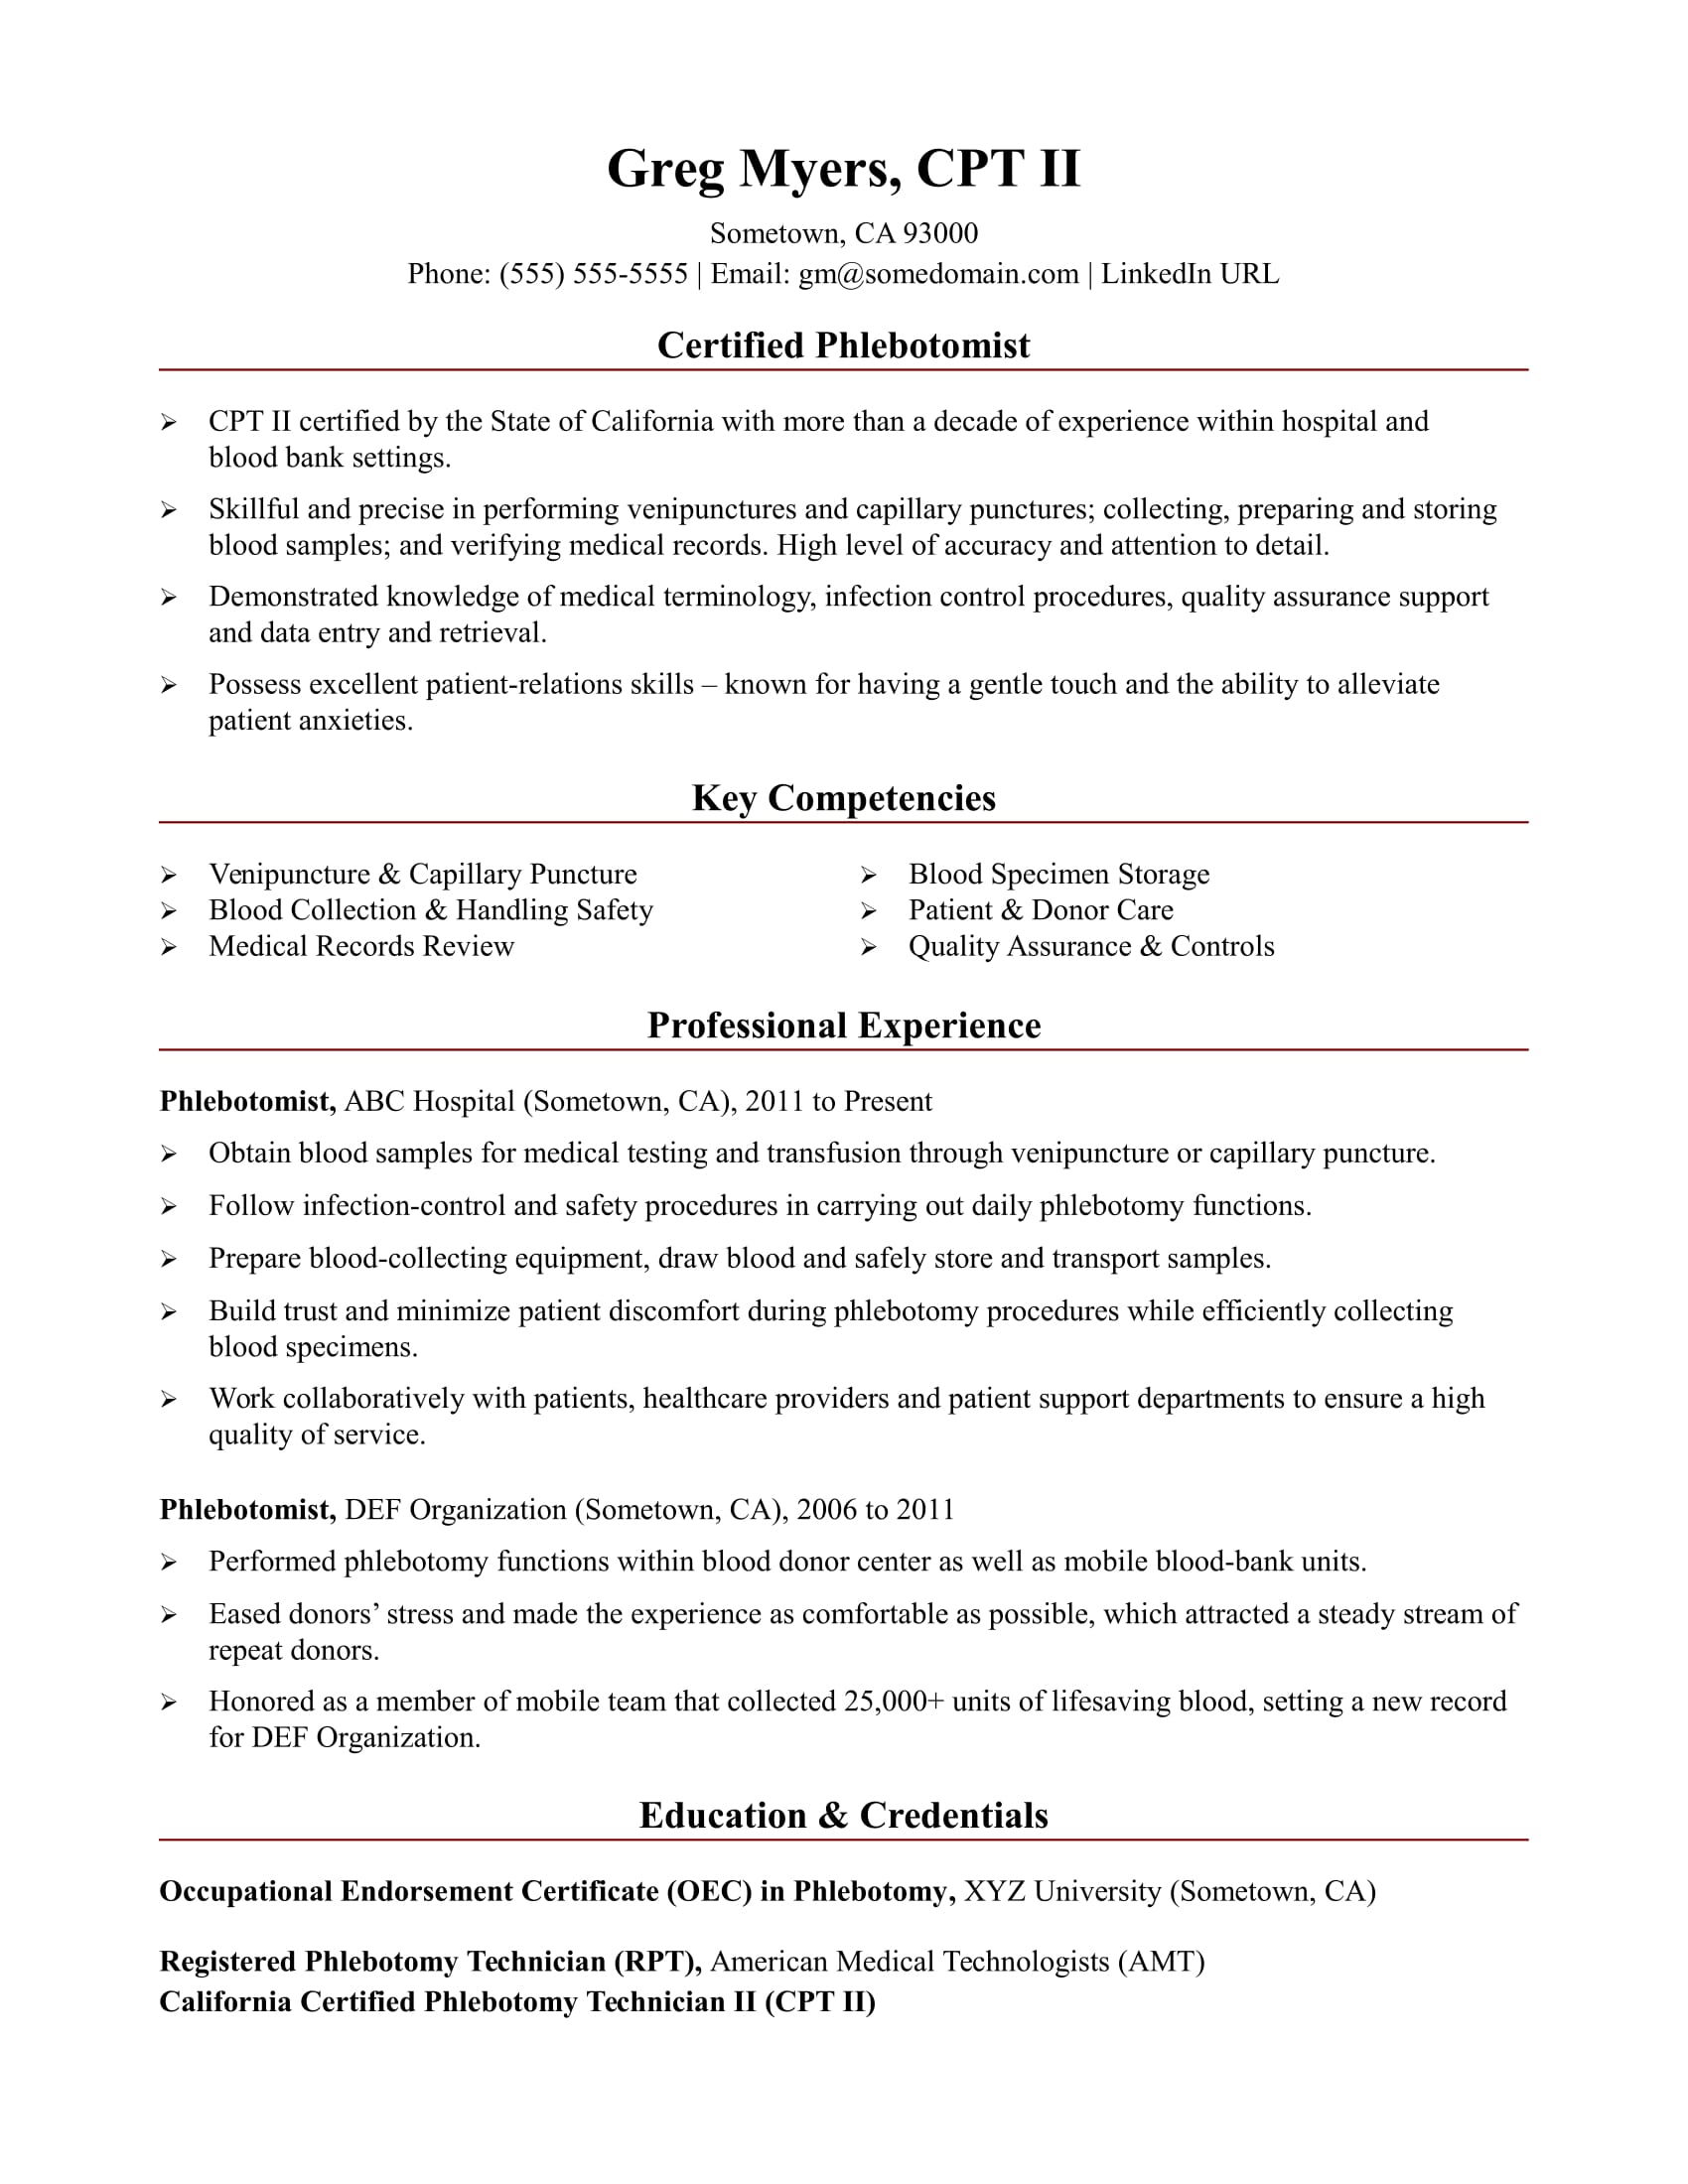 Sample Resume For A Phlebotomist  Quality Assurance Resume Examples